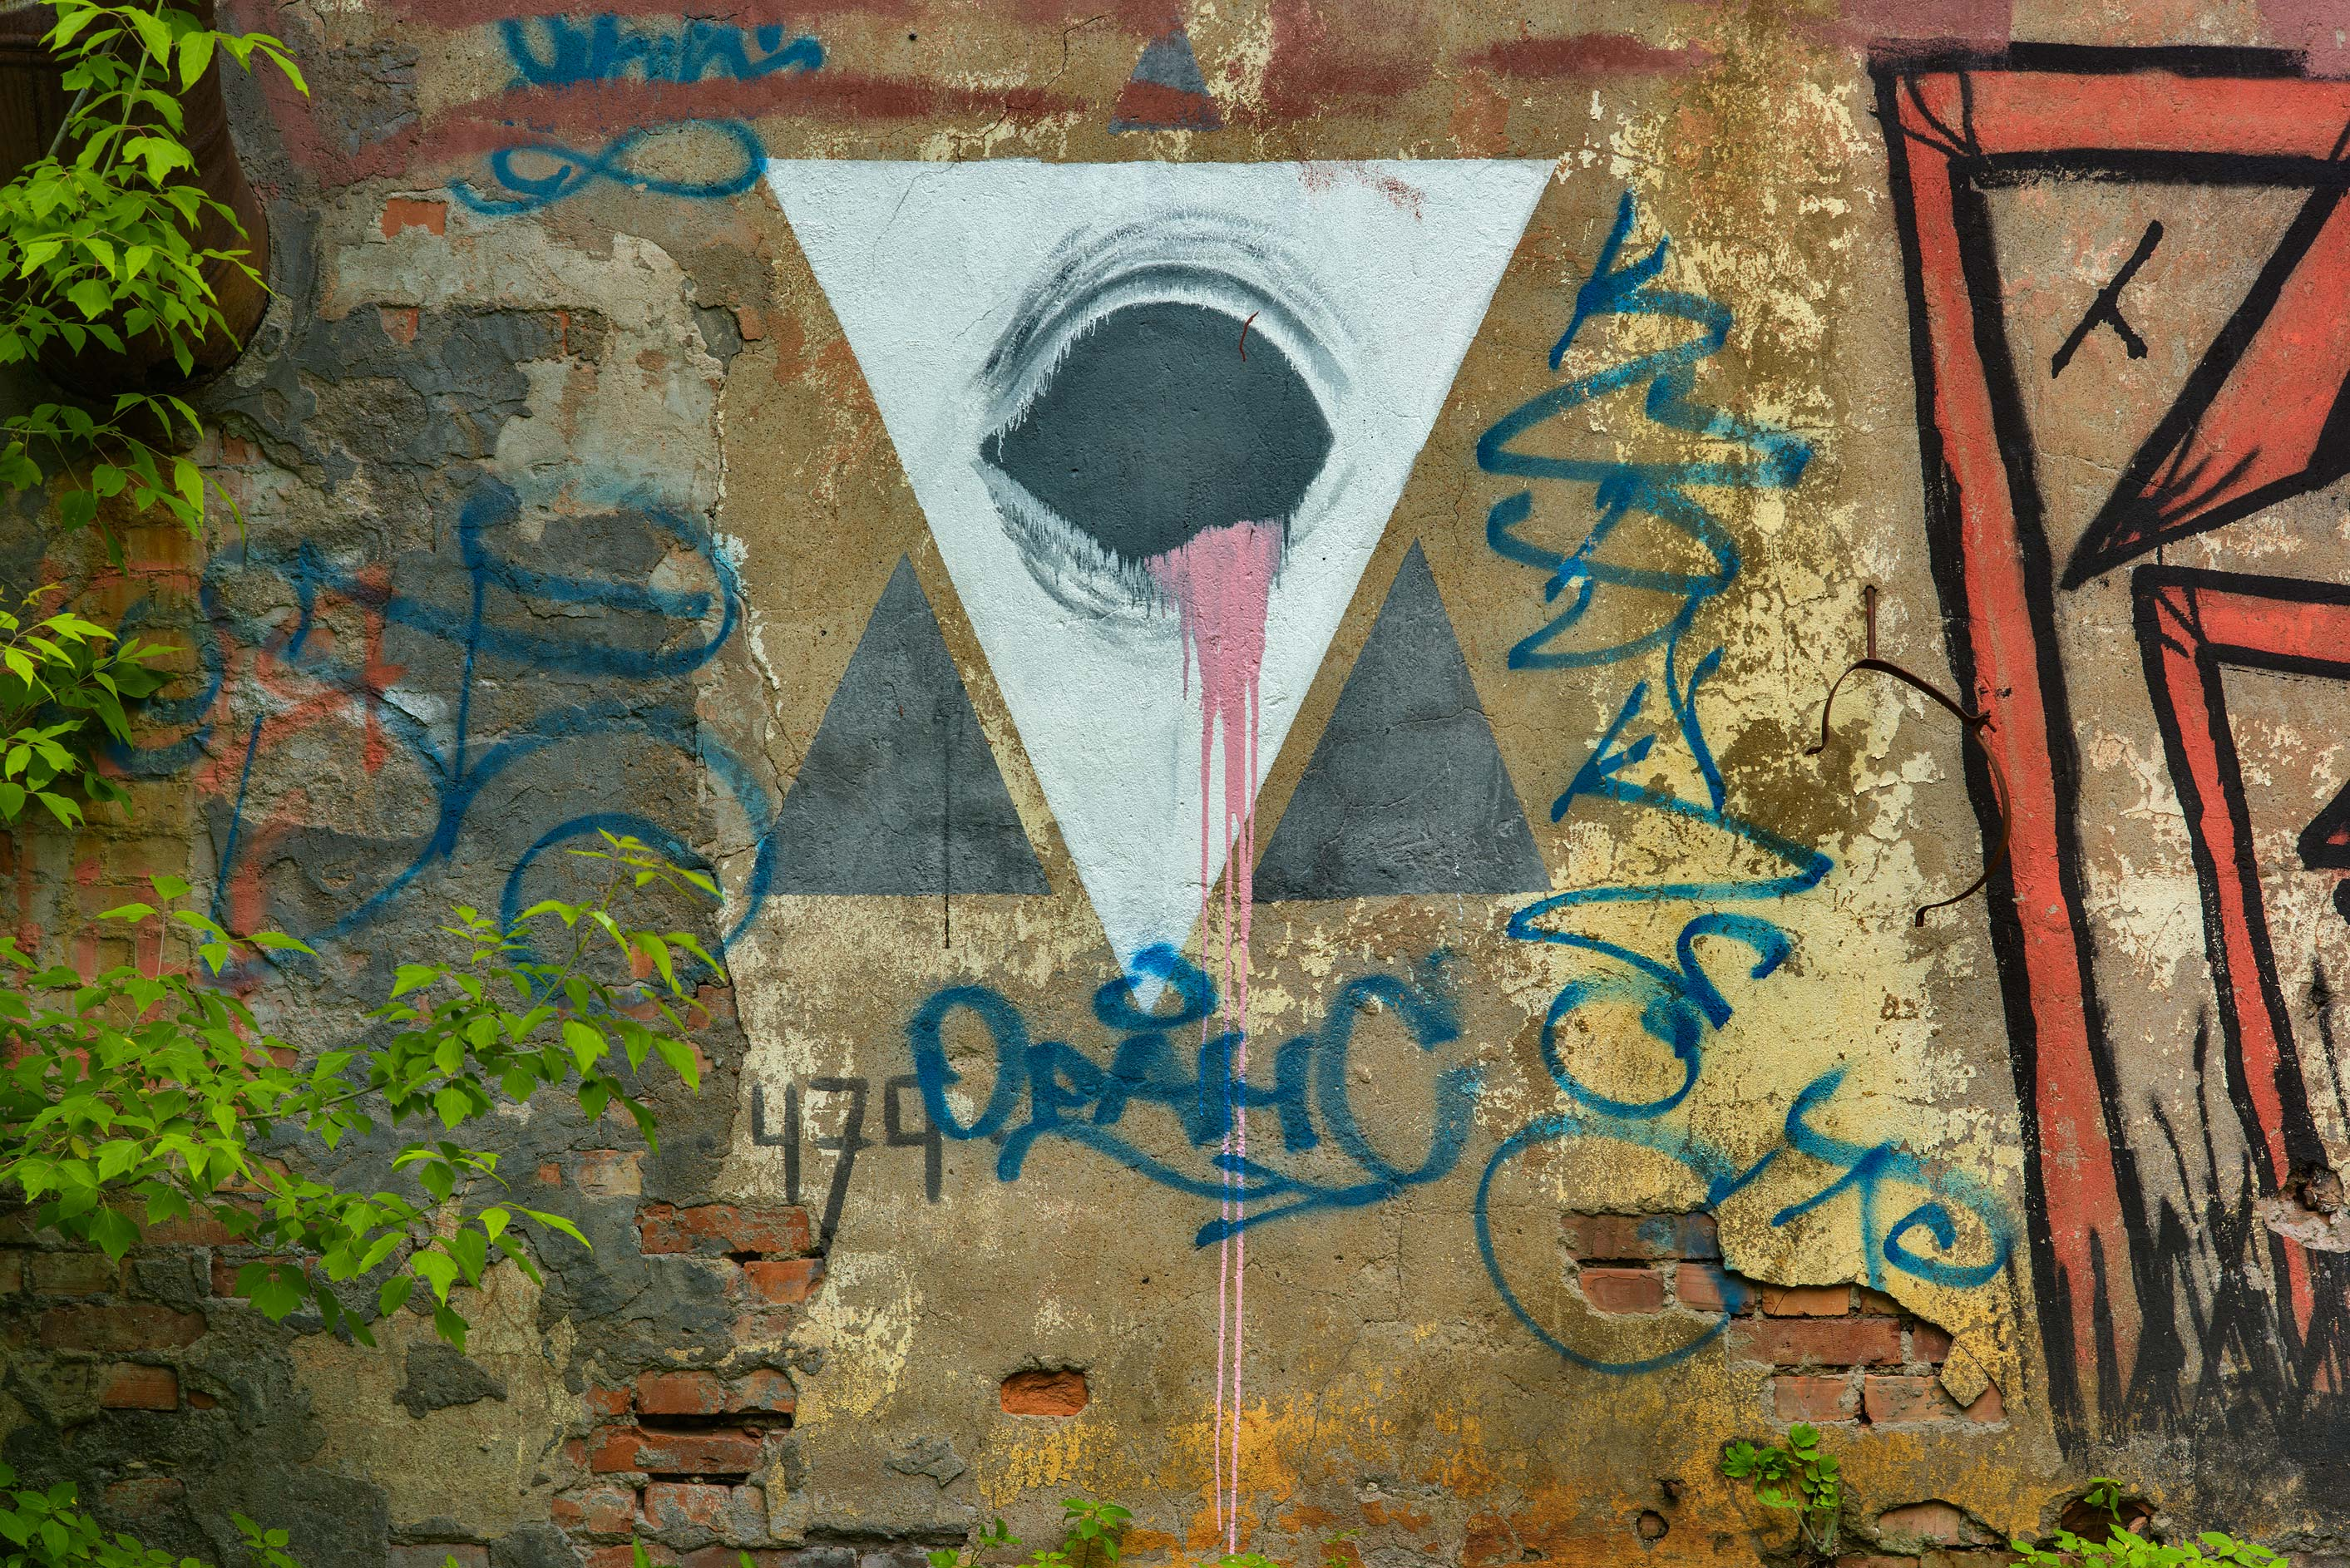 White triangle on graffiti on a house at 26K2...Island. St.Petersburg, Russia